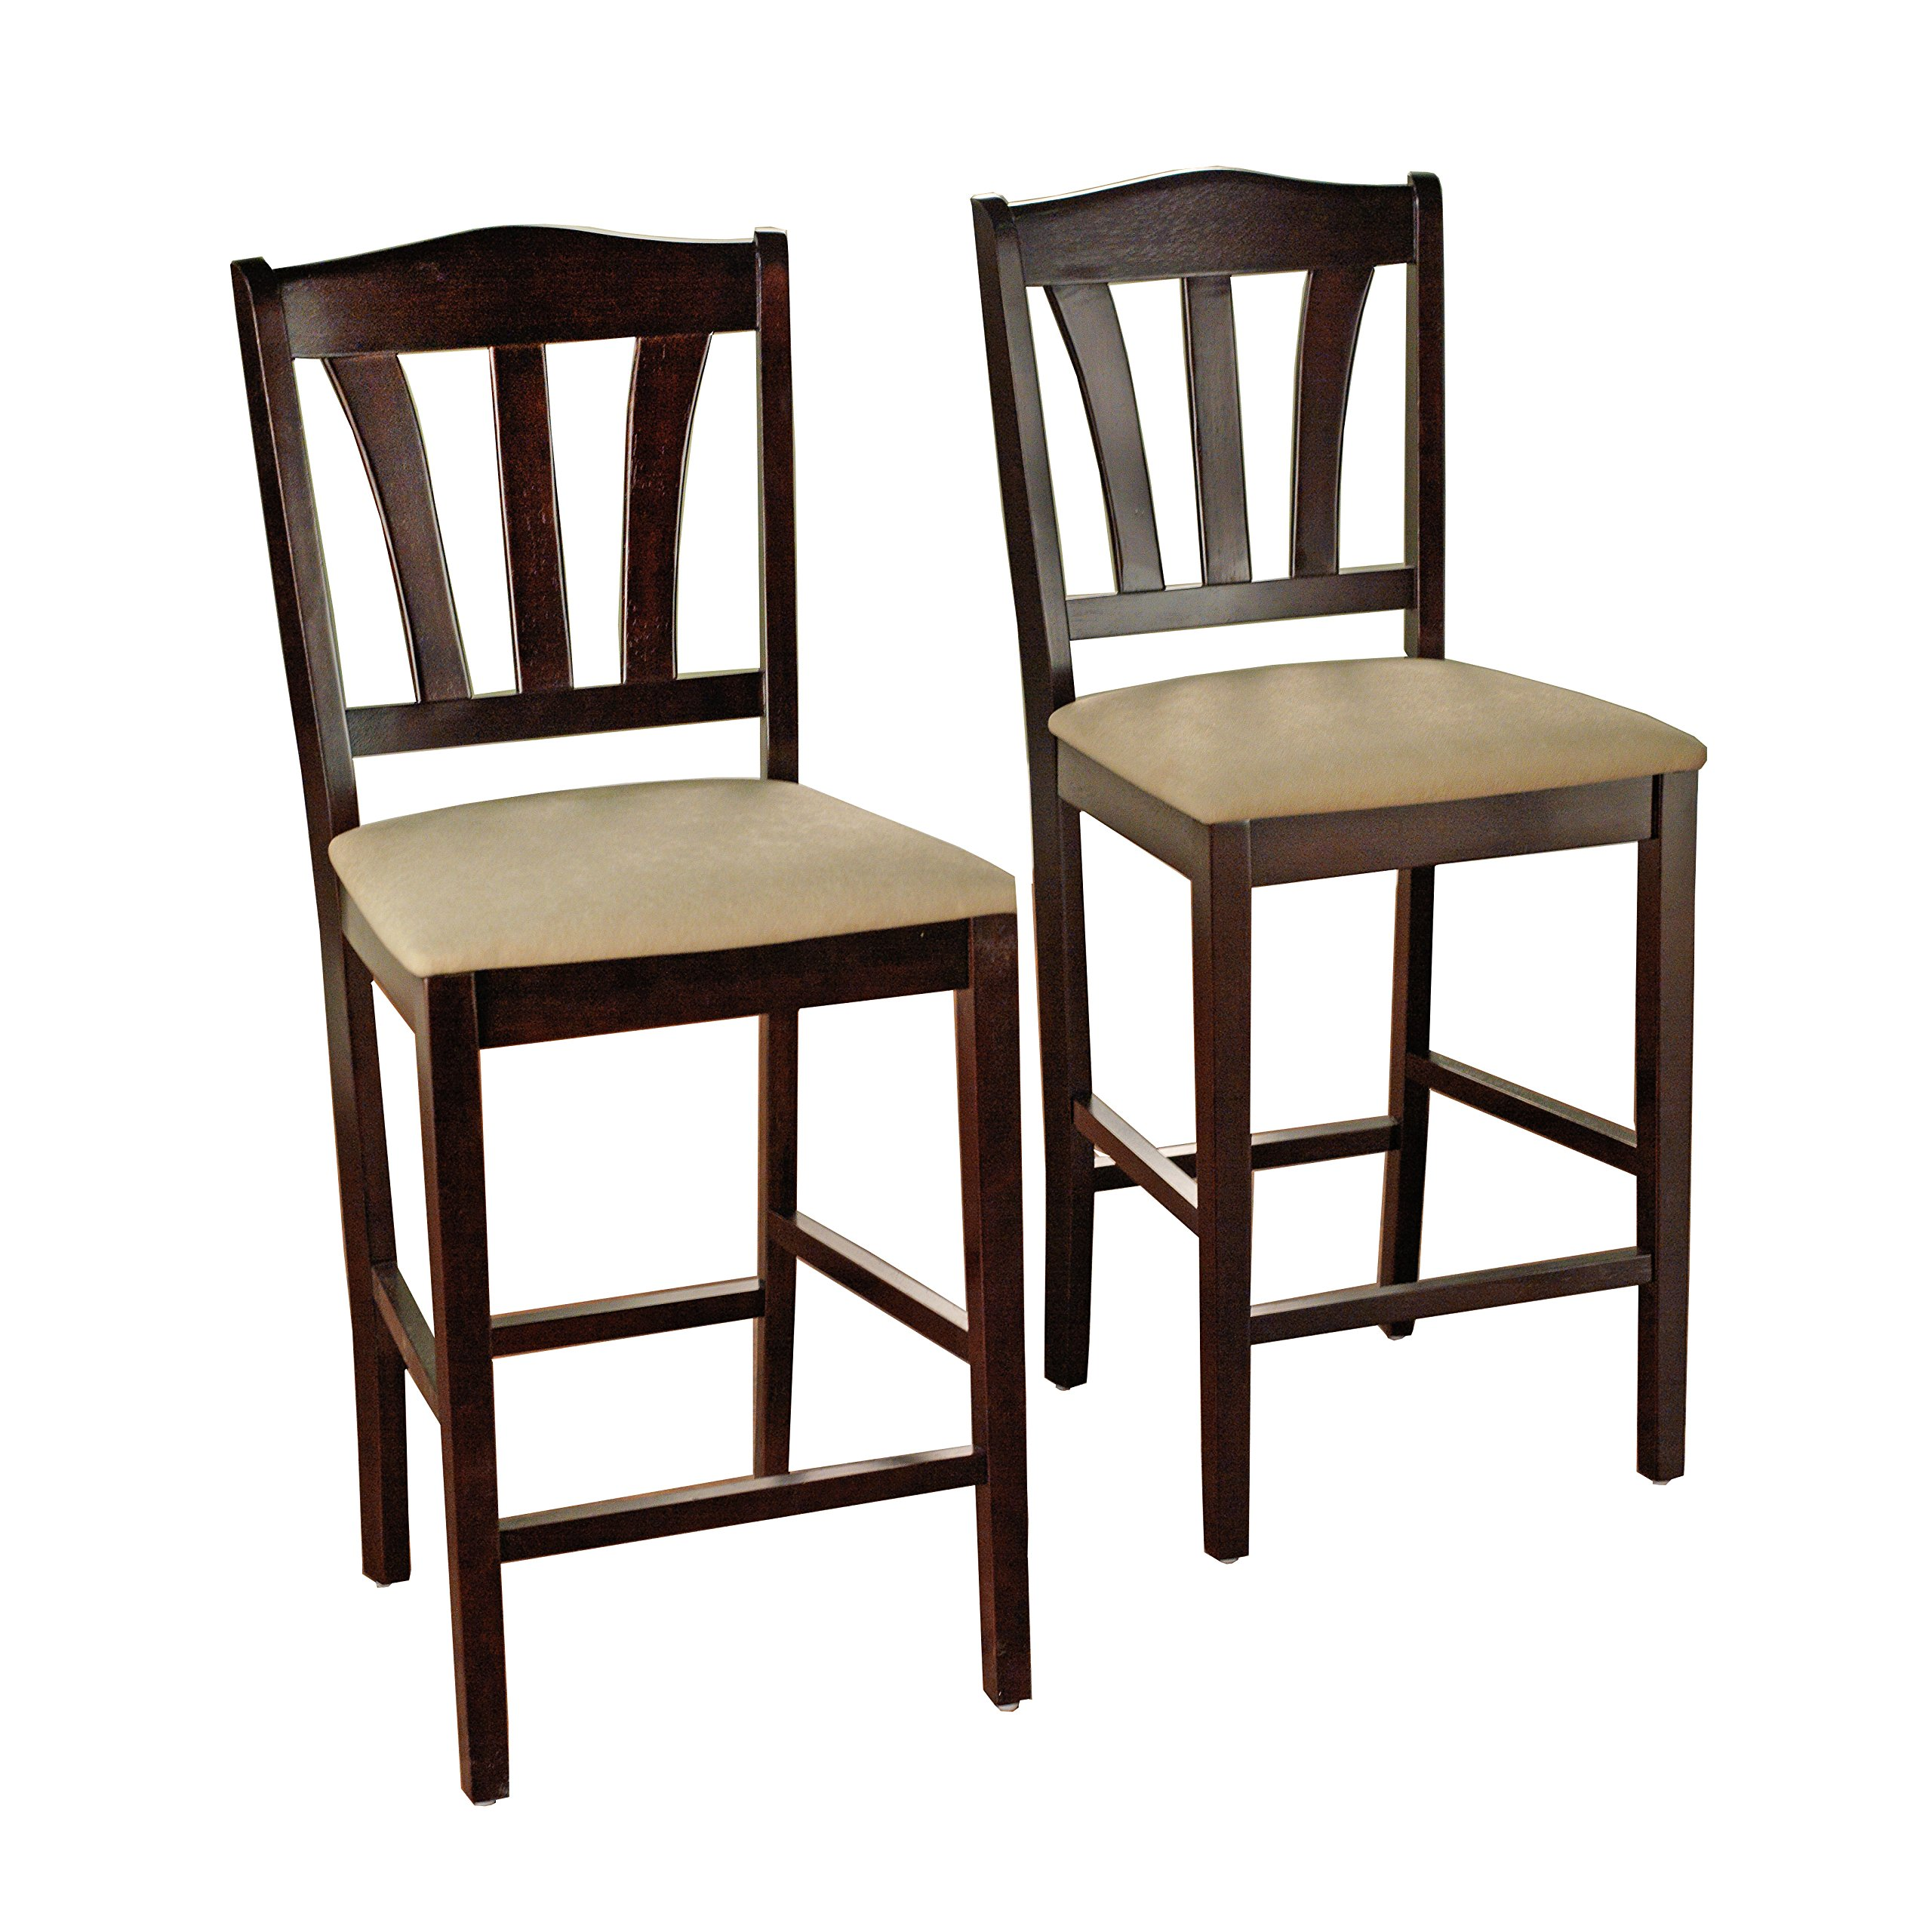 Target Marketing Systems Lucca Collection Contemporary Style High Top Barstool, Set of 2, Espresso, 24''